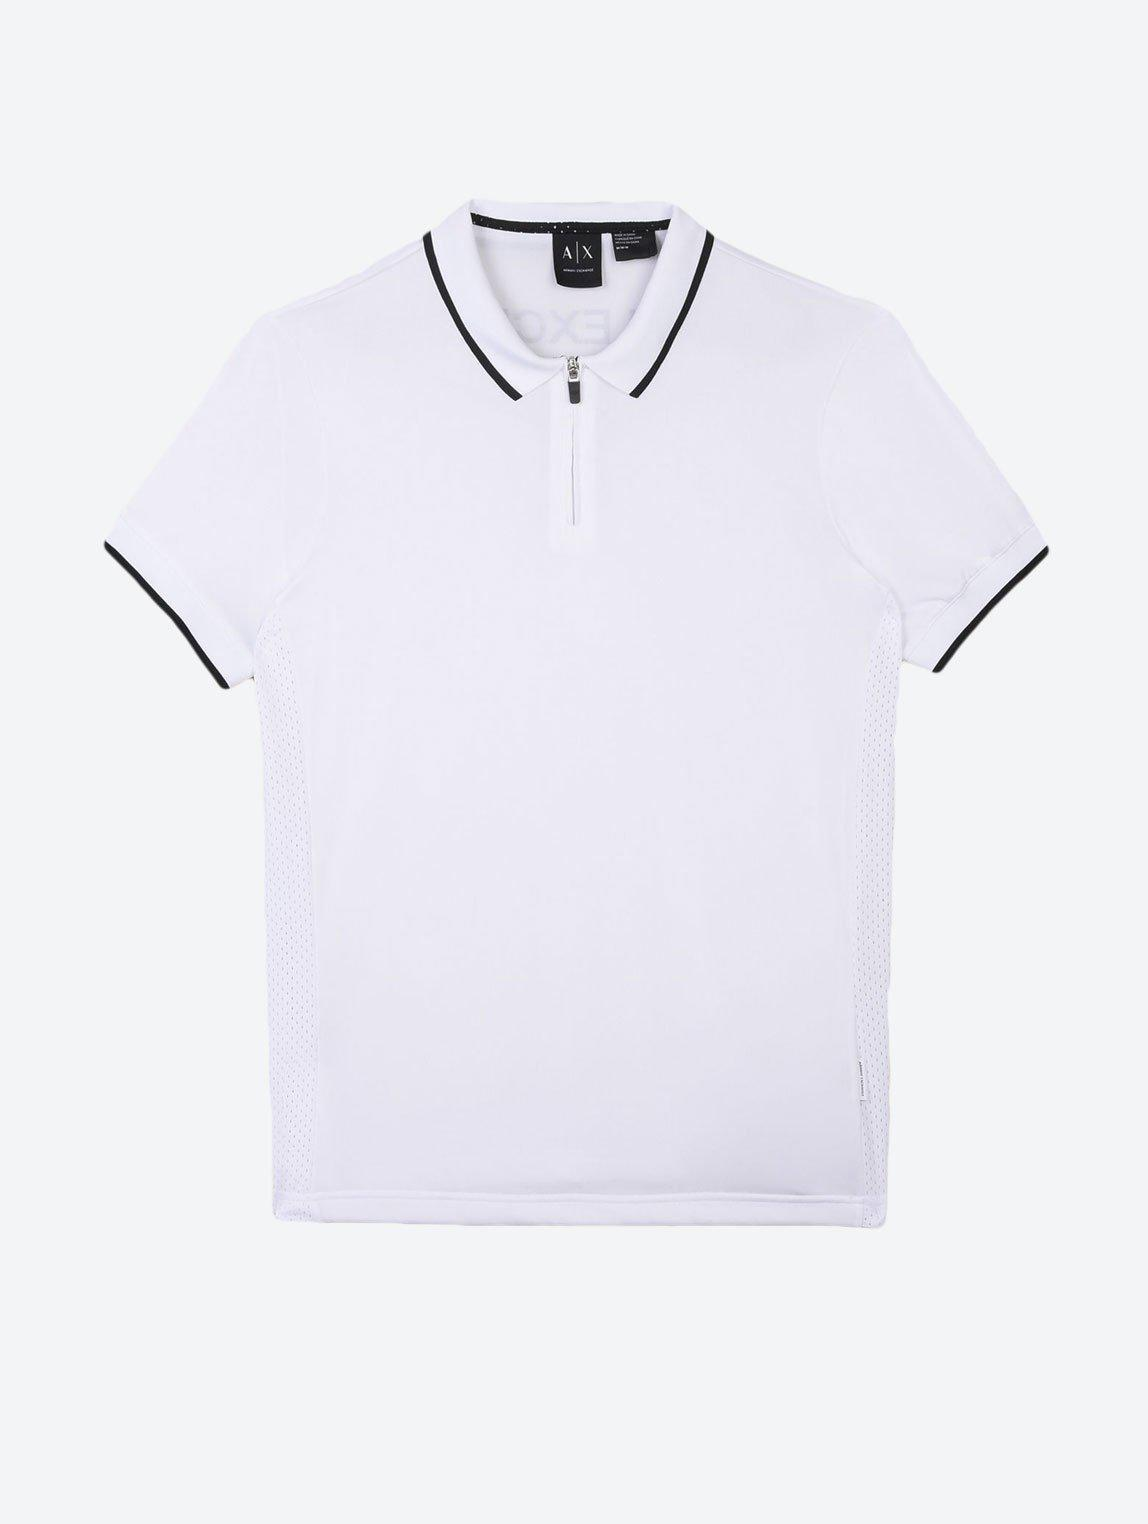 ARMANI EXCHANGE ZIP POLO